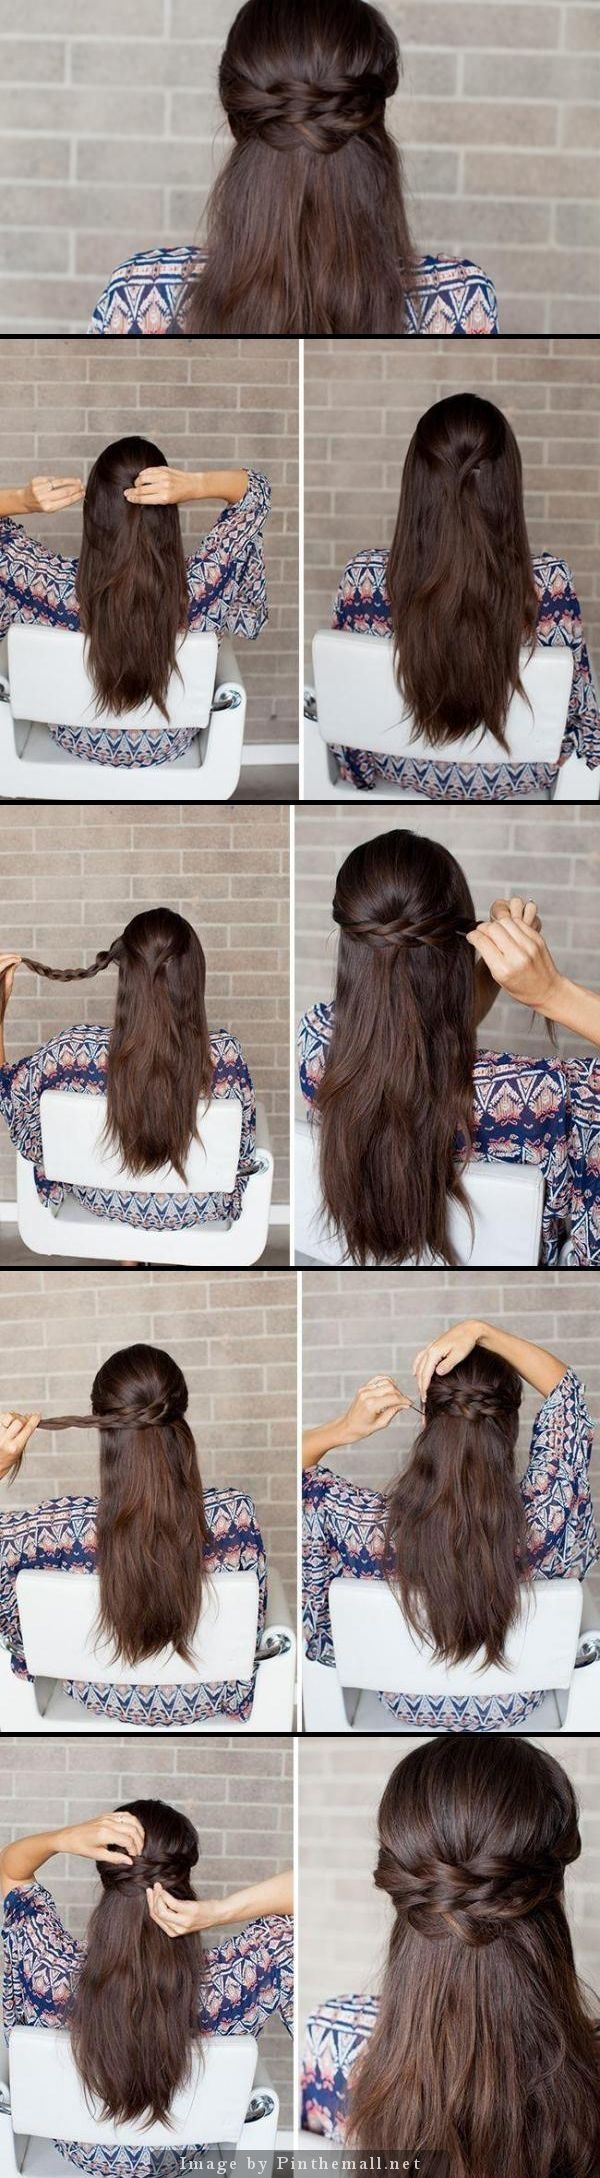 Half Up Half Down Hairstyle hair long hair diy hair hairstyles hair tutorials easy hairstyles